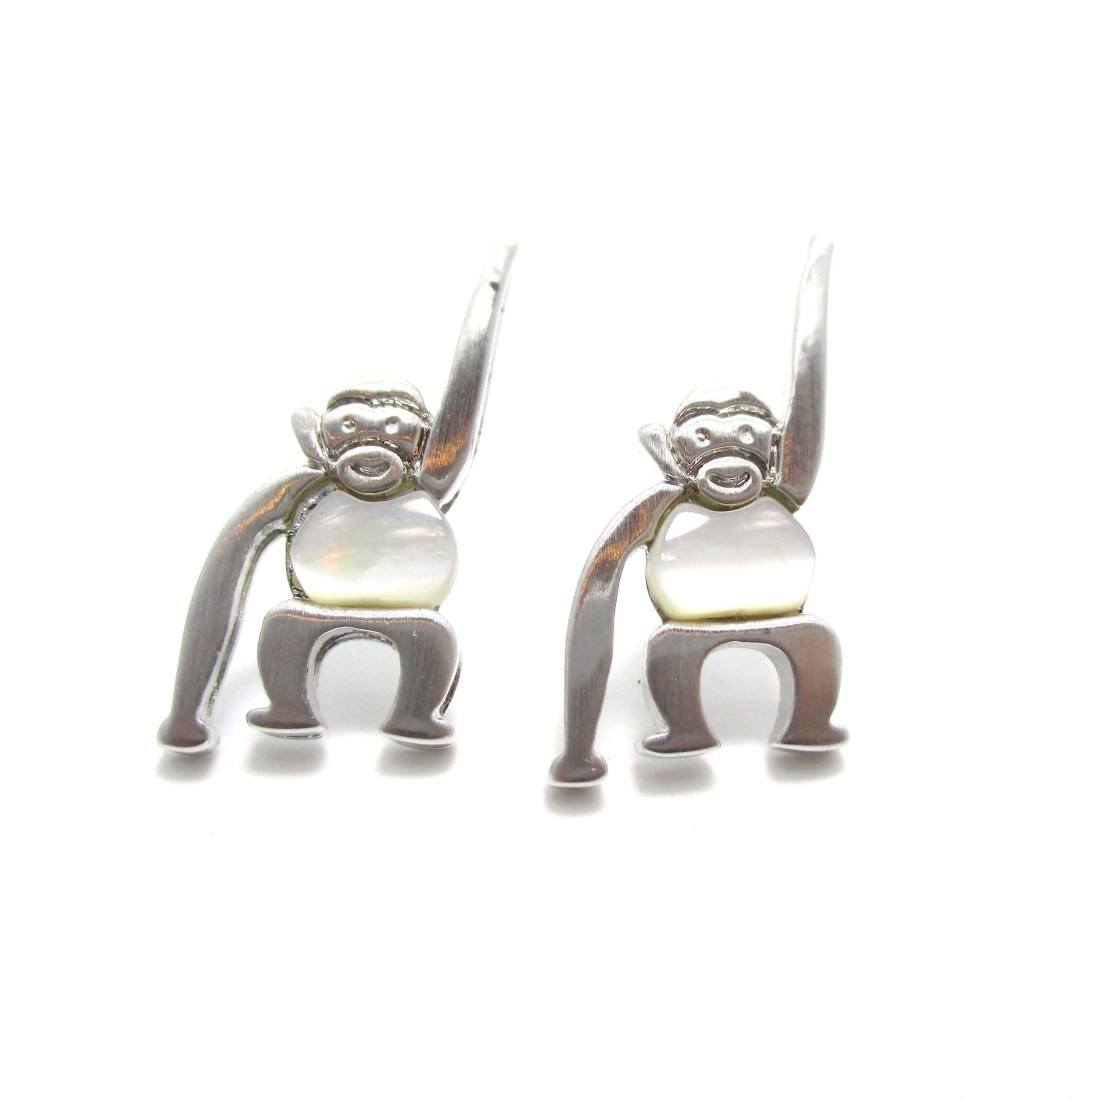 Monkey Chimpanzee Animal Themed Stud Earrings in Silver